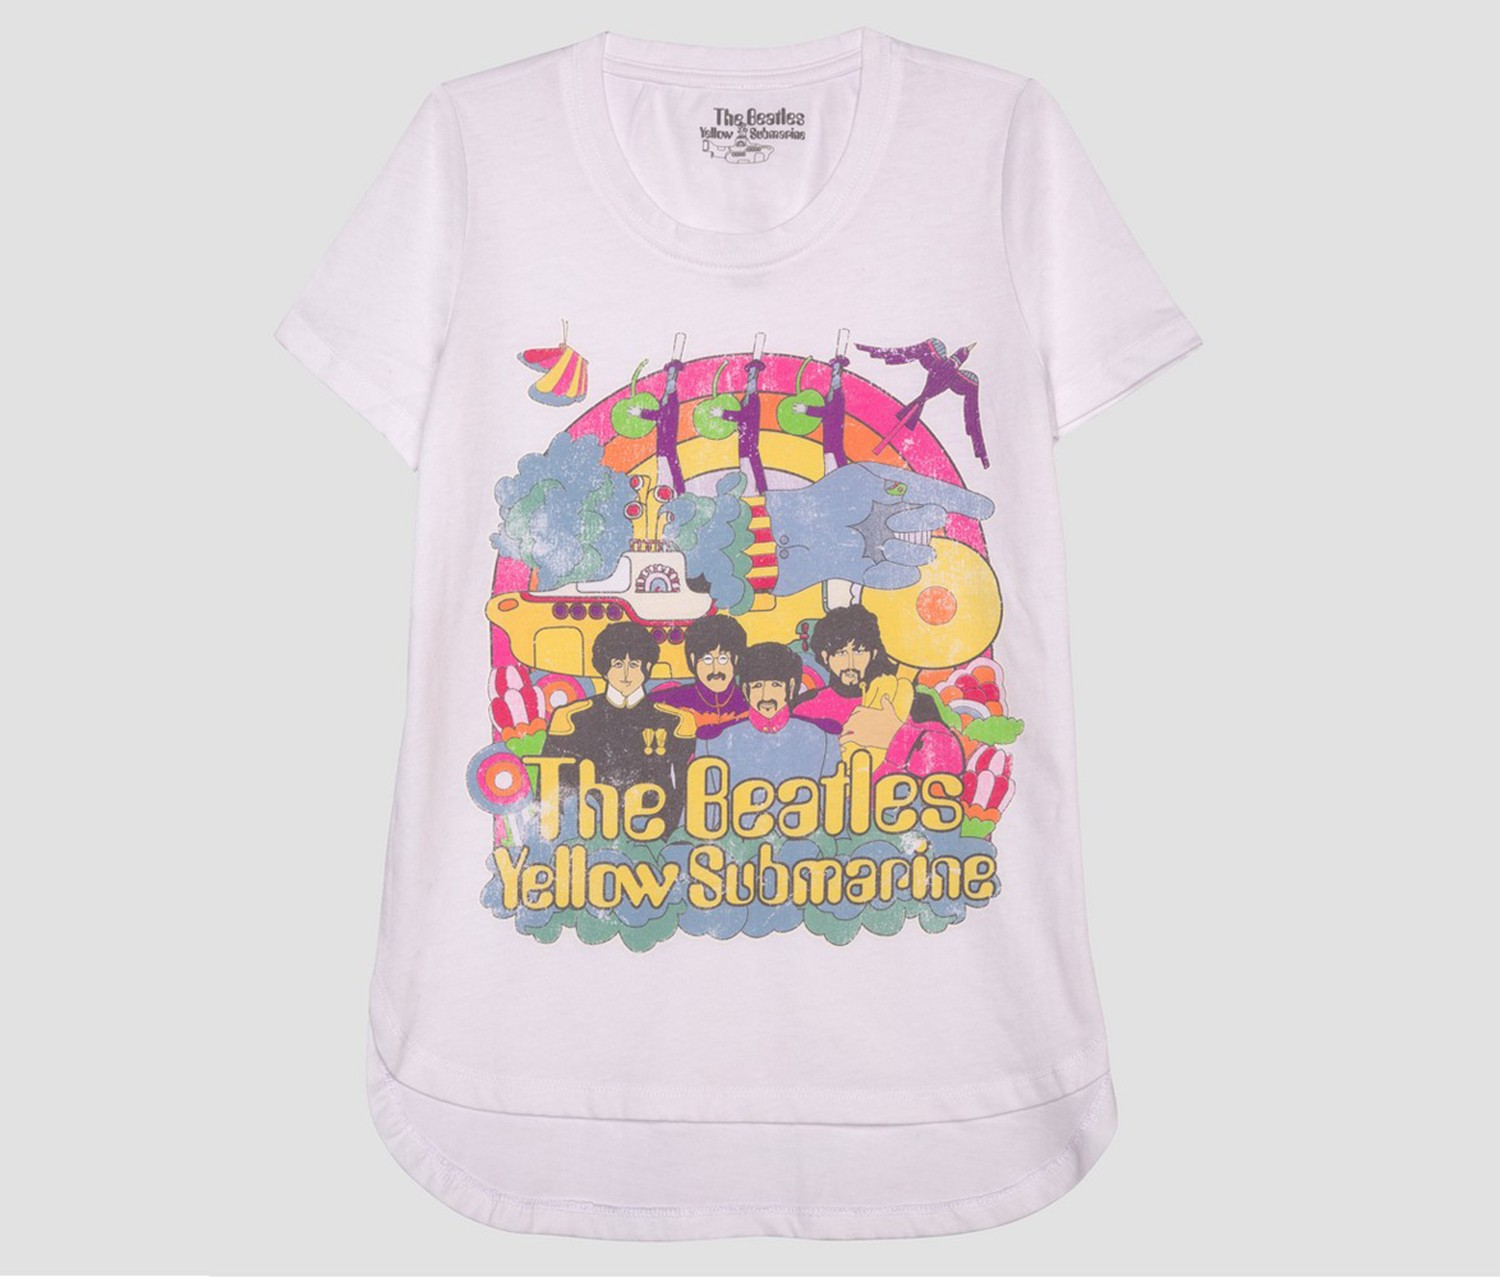 84d513794 Shop The Beatles Beatles Girl's Short Sleeve T-Shirt, White for Kids ...